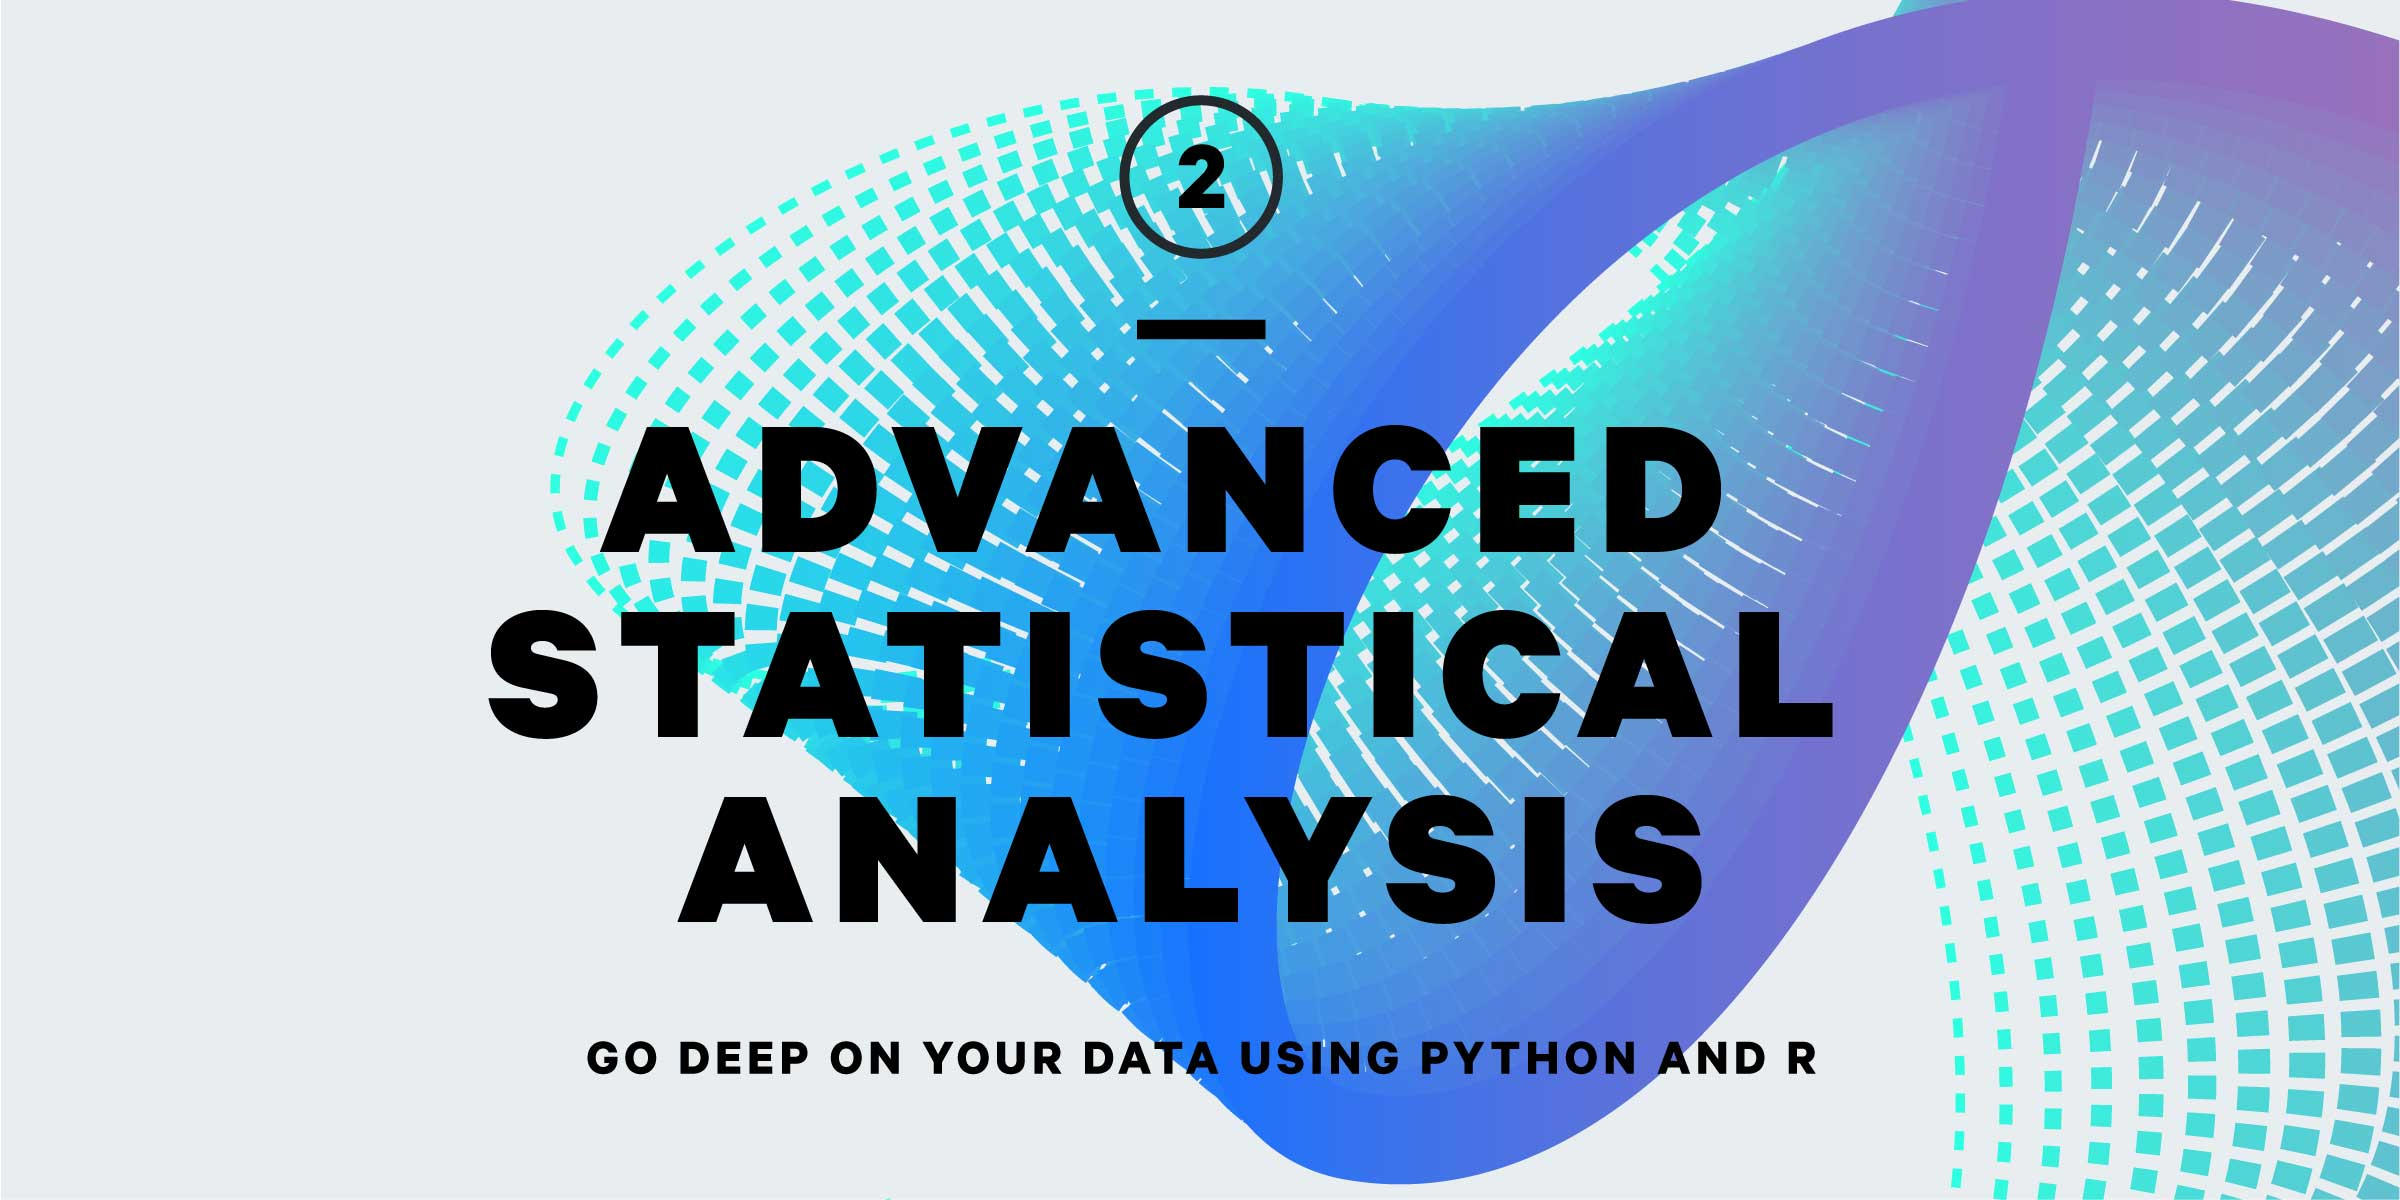 R & Python 101: Advanced Statistical Analysis